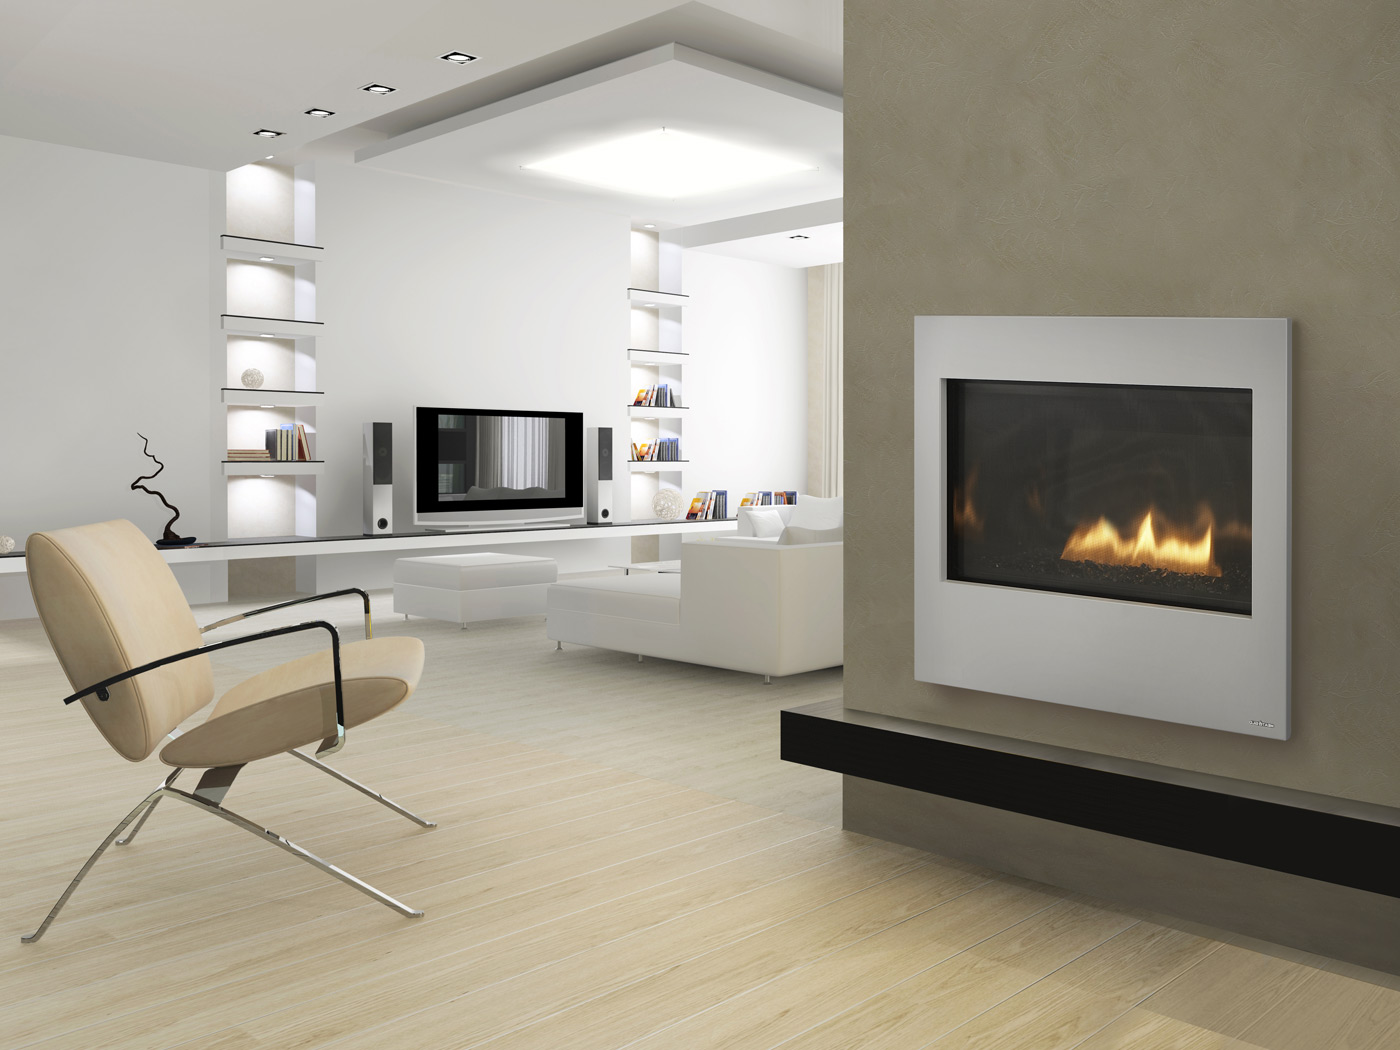 Design Fireplaces Fireplaces Gas Fireplace Luxury Lifestyle Design